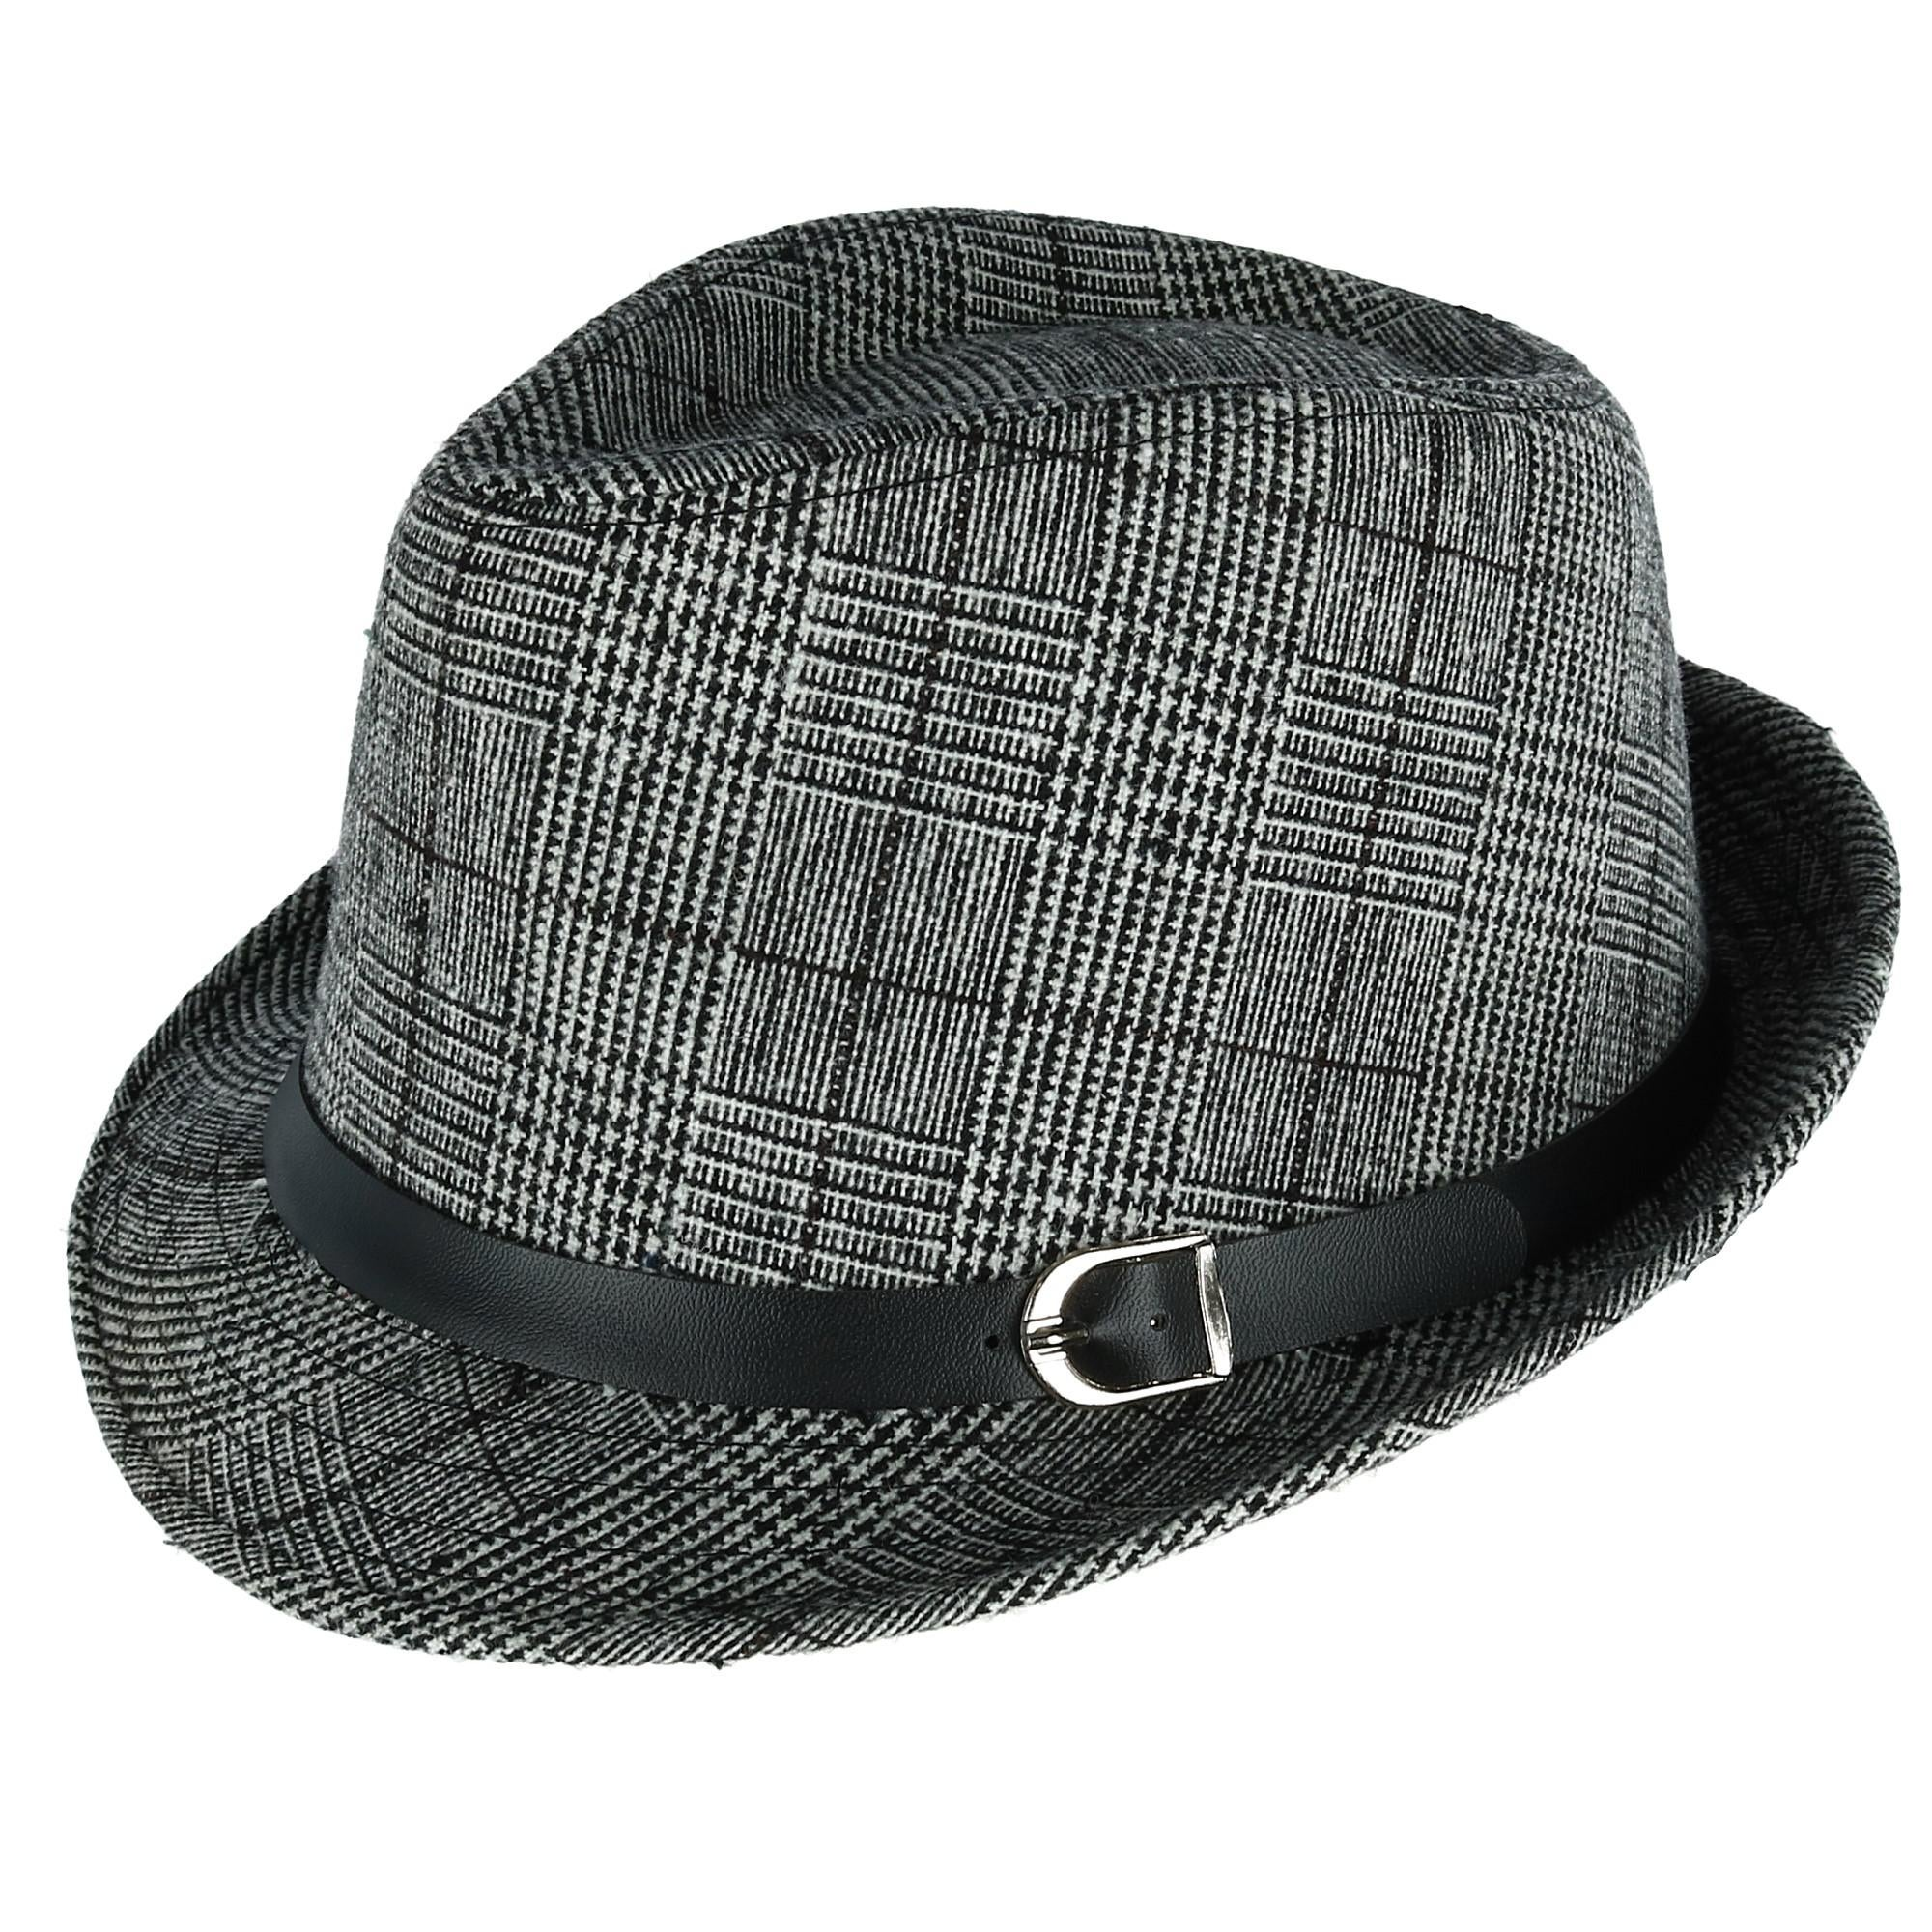 6ea2395e5b2935 Shop Westend Men's Plaid Trilby Fedora with Black Band - Free Shipping On  Orders Over $45 - Overstock - 24268189